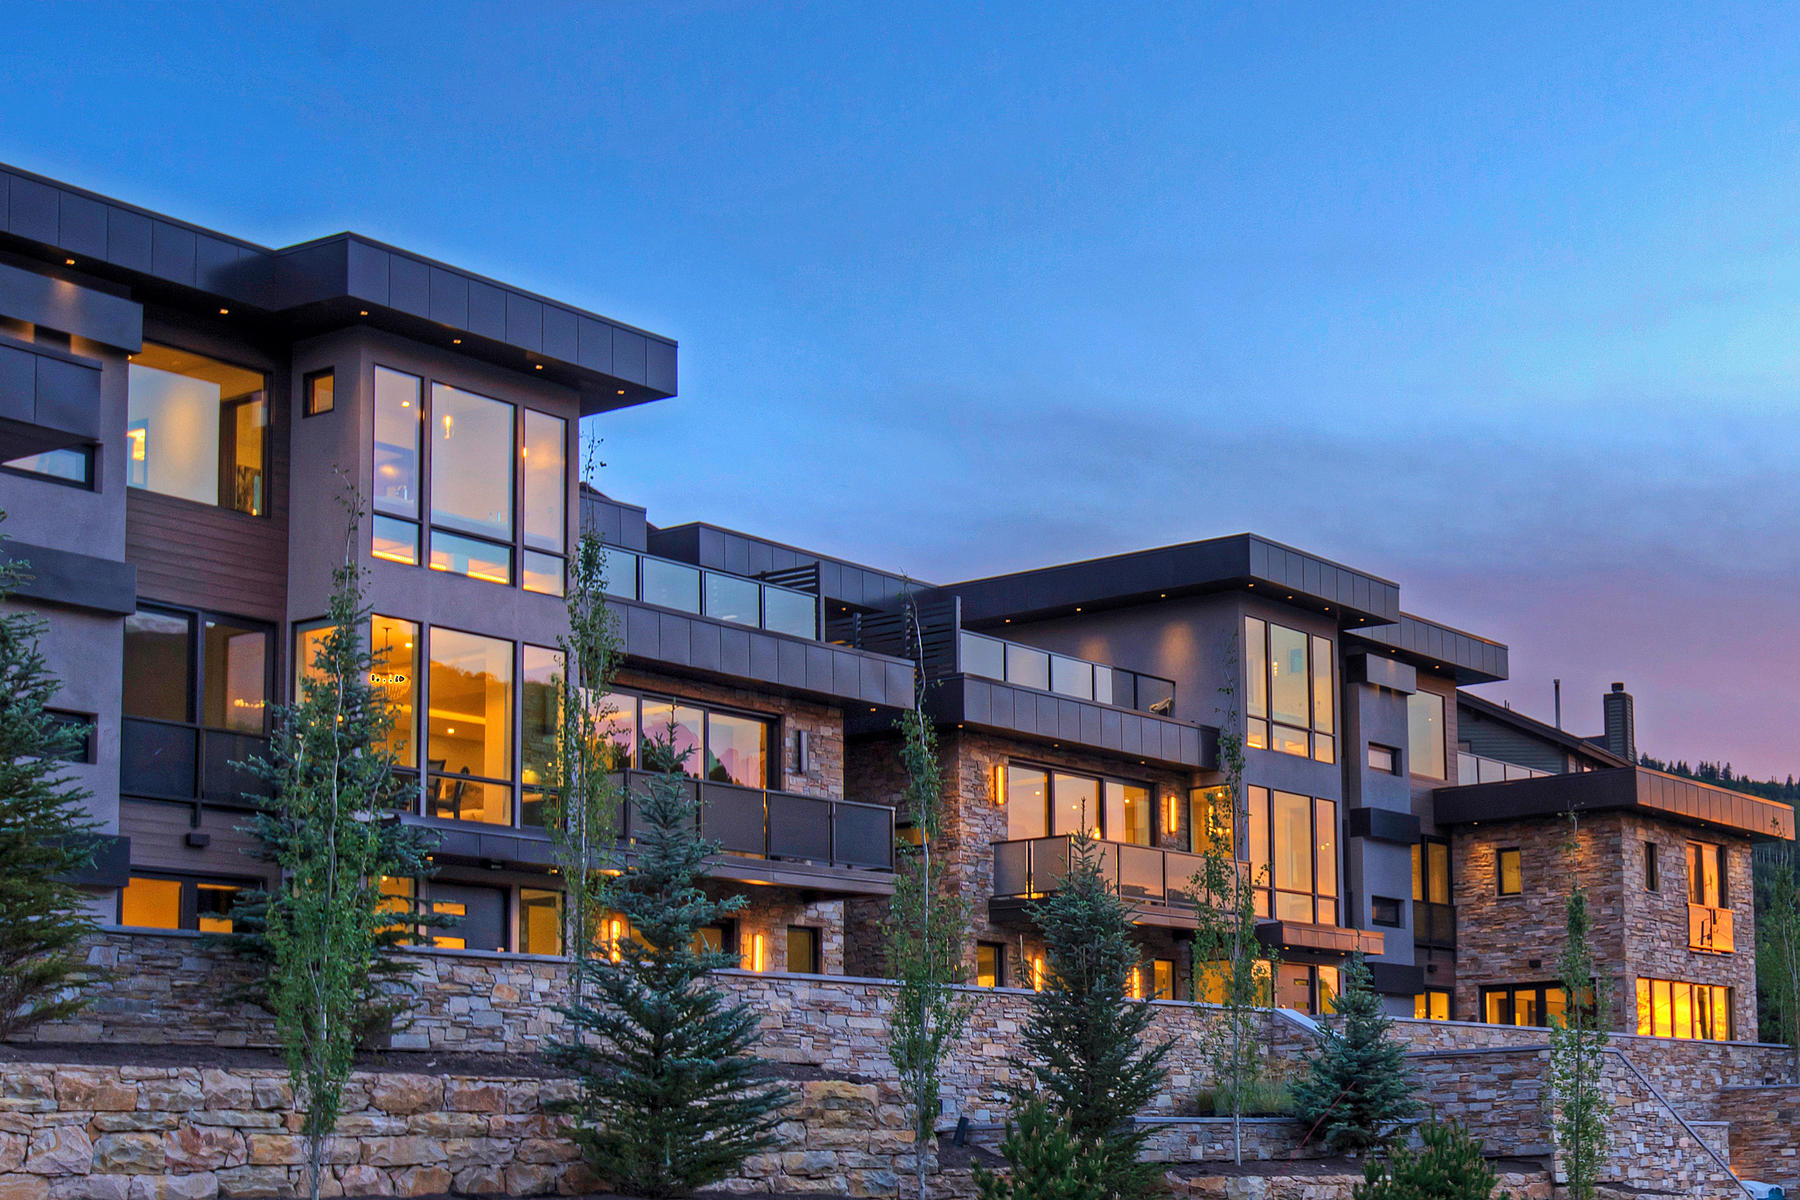 Single Family Home for Sale at New Contemporary Construction in Old Town 300 Deer Valley Dr #C Park City, Utah 84060 United States